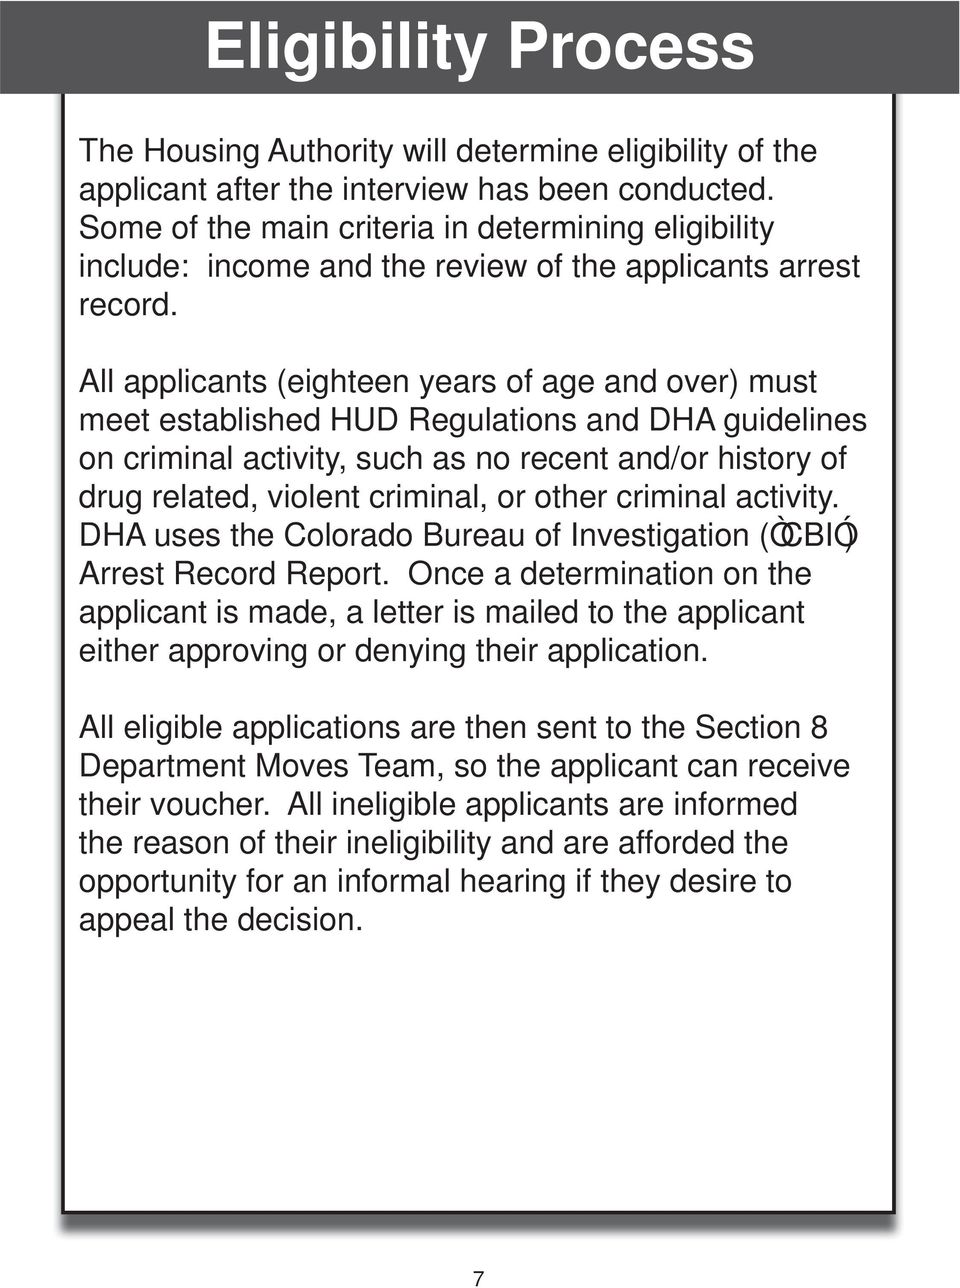 All applicants (eighteen years of age and over) must meet established HUD Regulations and DHA guidelines on criminal activity, such as no recent and/or history of drug related, violent criminal, or